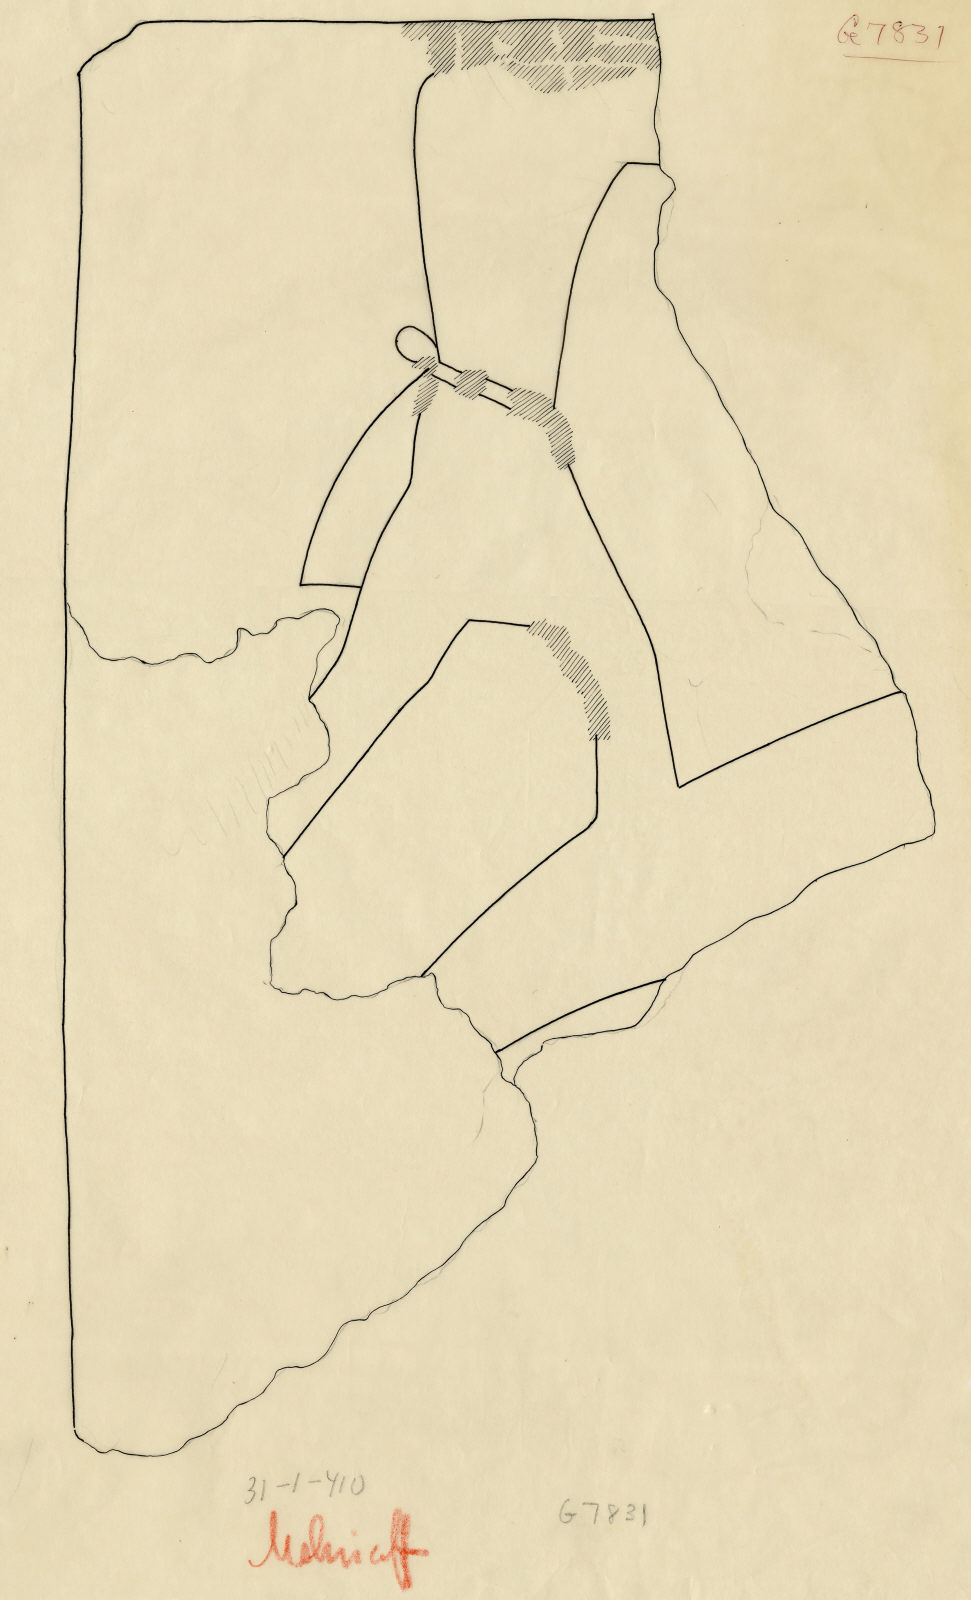 Drawings: G 7831: fragment of relief